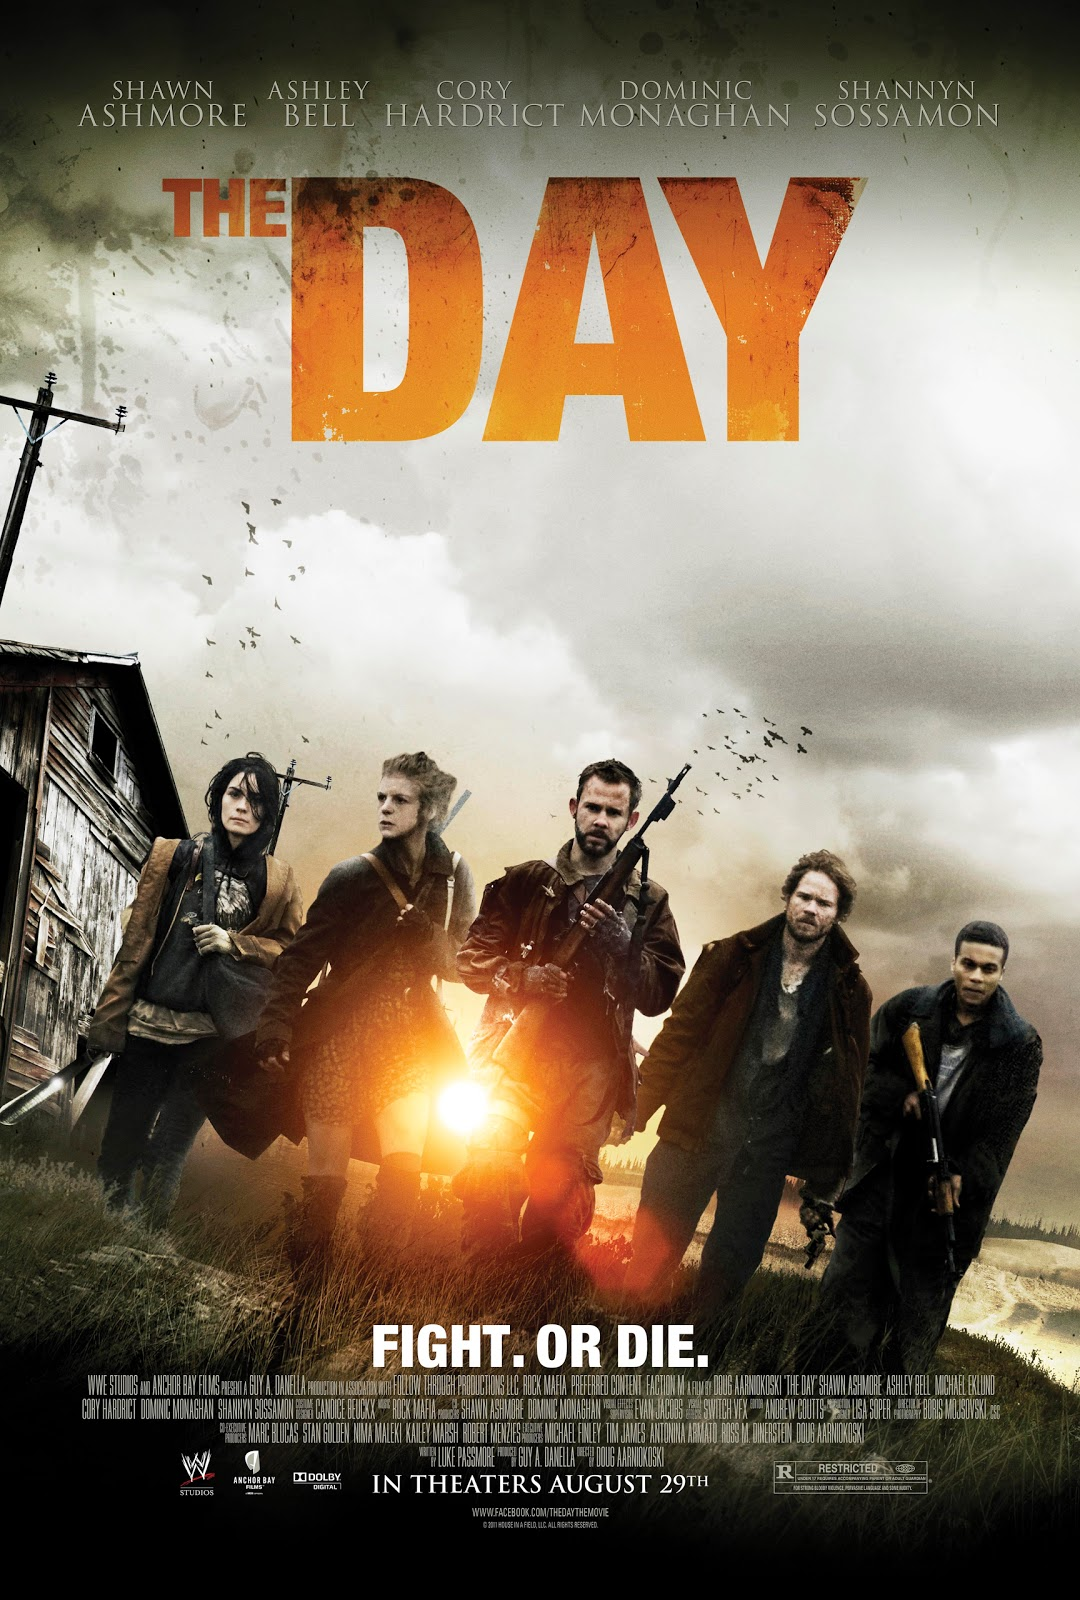 http://1.bp.blogspot.com/-O5q8rUO8YBk/UCMHgzMQmzI/AAAAAAAAA8w/b33EKmlRISU/s1600/The-Day-Movie-Poster.jpg